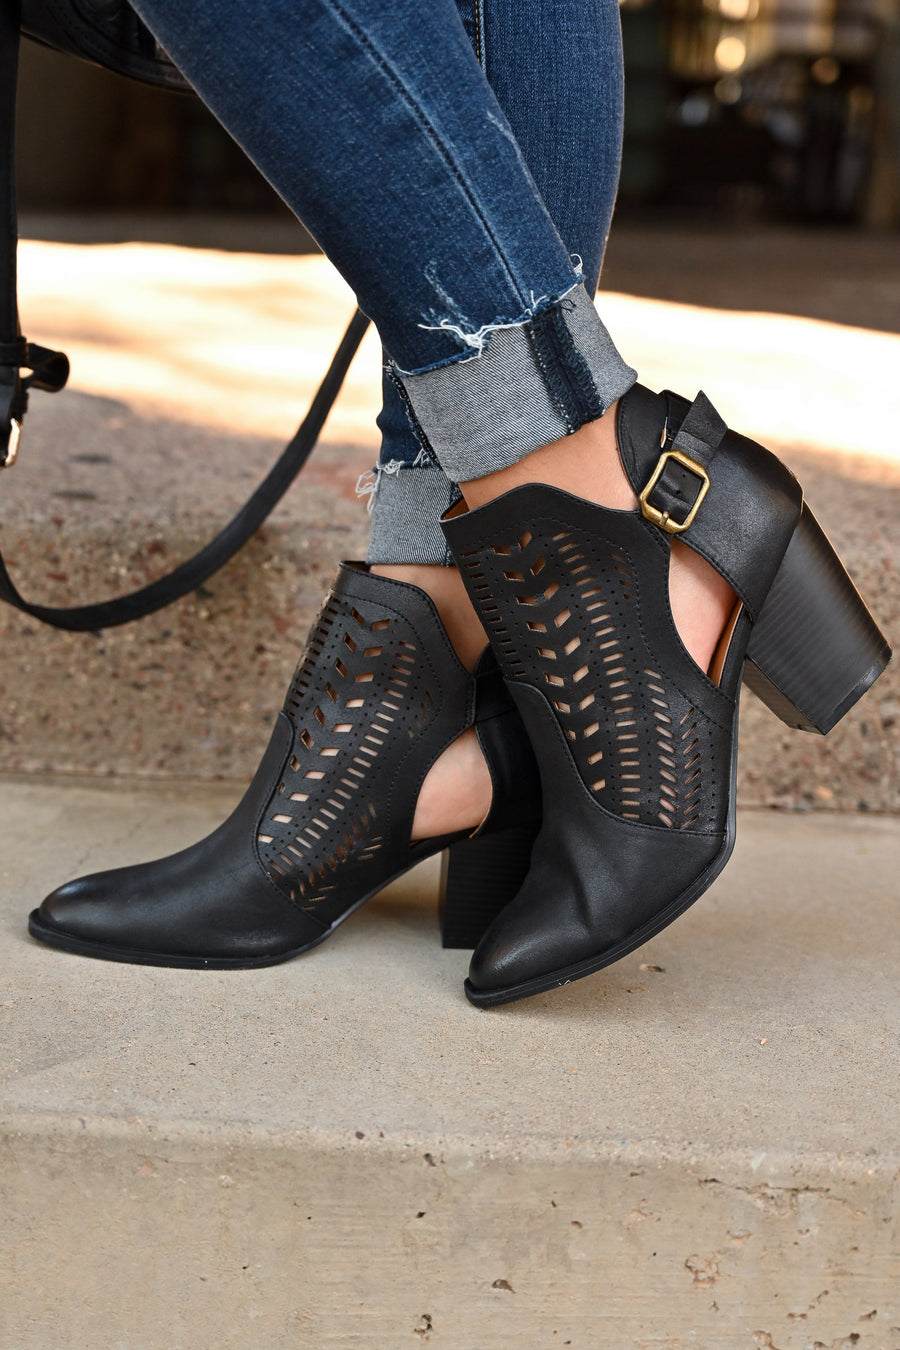 Becca Booties - Black cutout buckle booties closet candy boutique 1